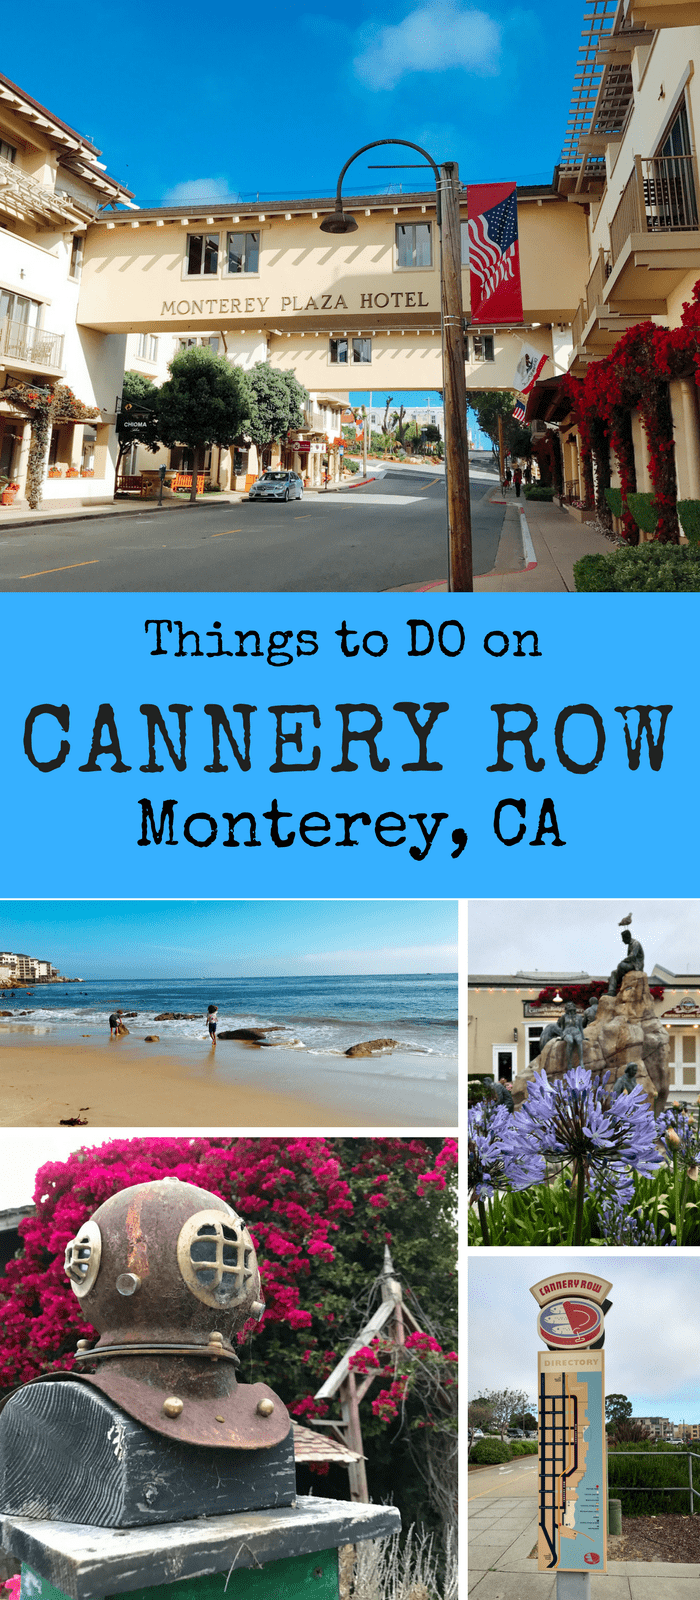 Don't Miss these sites and attractions in Cannery Row, Monterey, CA. Find MUST see sites, tips, and ideas for your next family trip to the area.